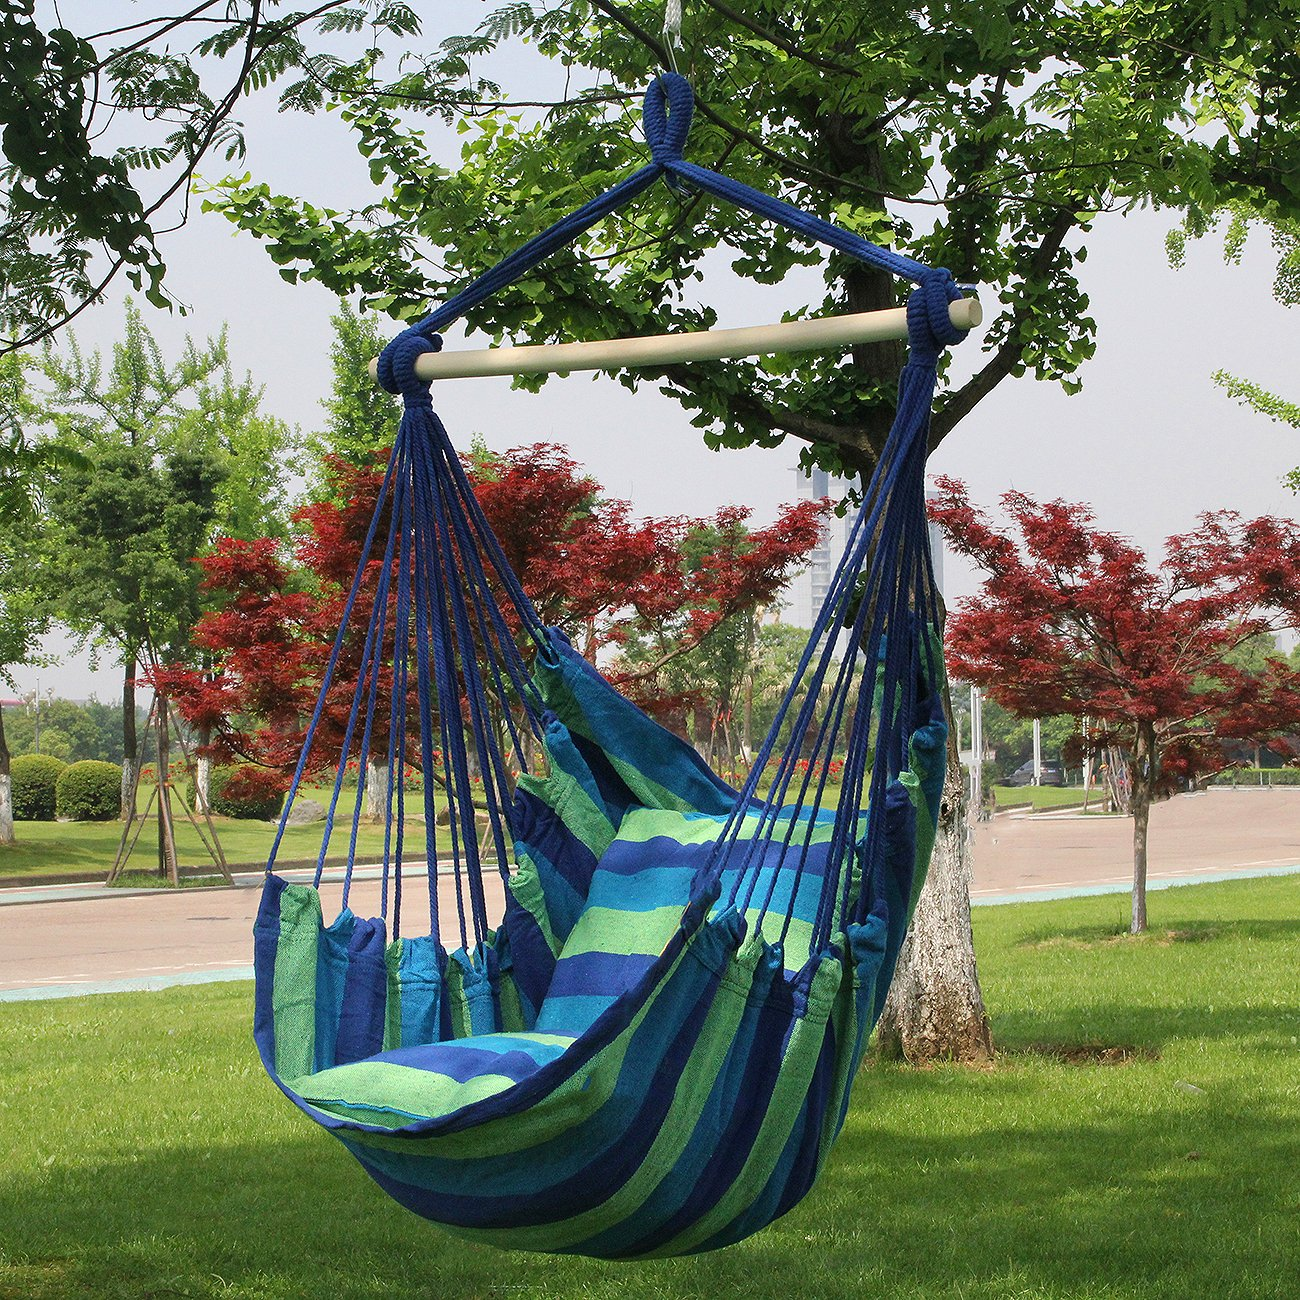 Amazon.com : Sorbus Hanging Rope Hammock Chair Swing Seat For Any Indoor Or  Outdoor Spaces  Max. 265 Lbs  2 Seat Cushions Included : Garden U0026 Outdoor